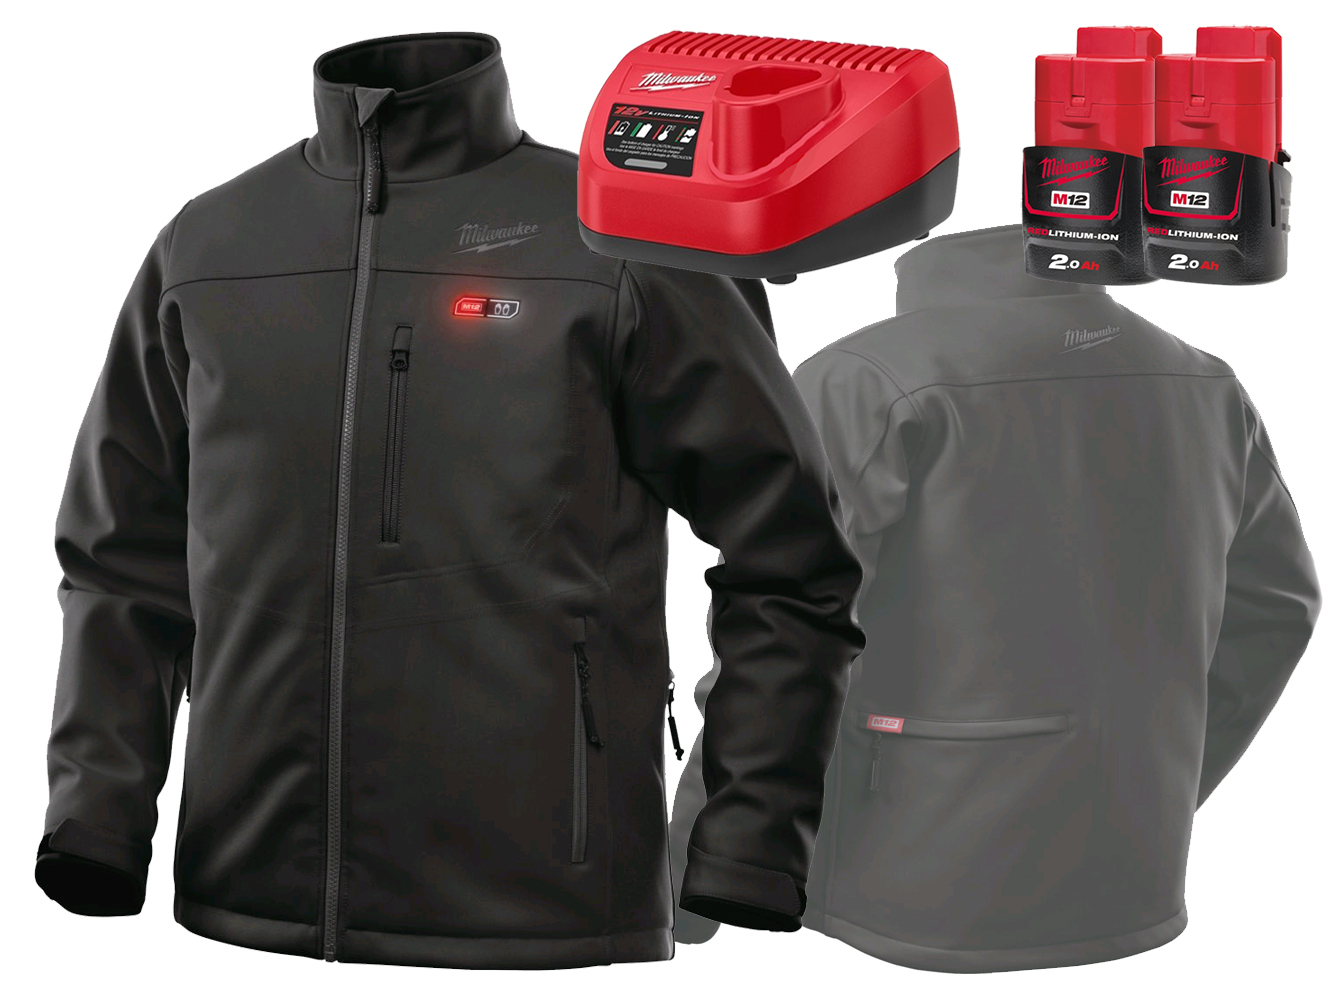 MILWAUKEE 12V BLACK PREMIUM HEATED JACKET - GEN4 - XL - 2.0AH PACK